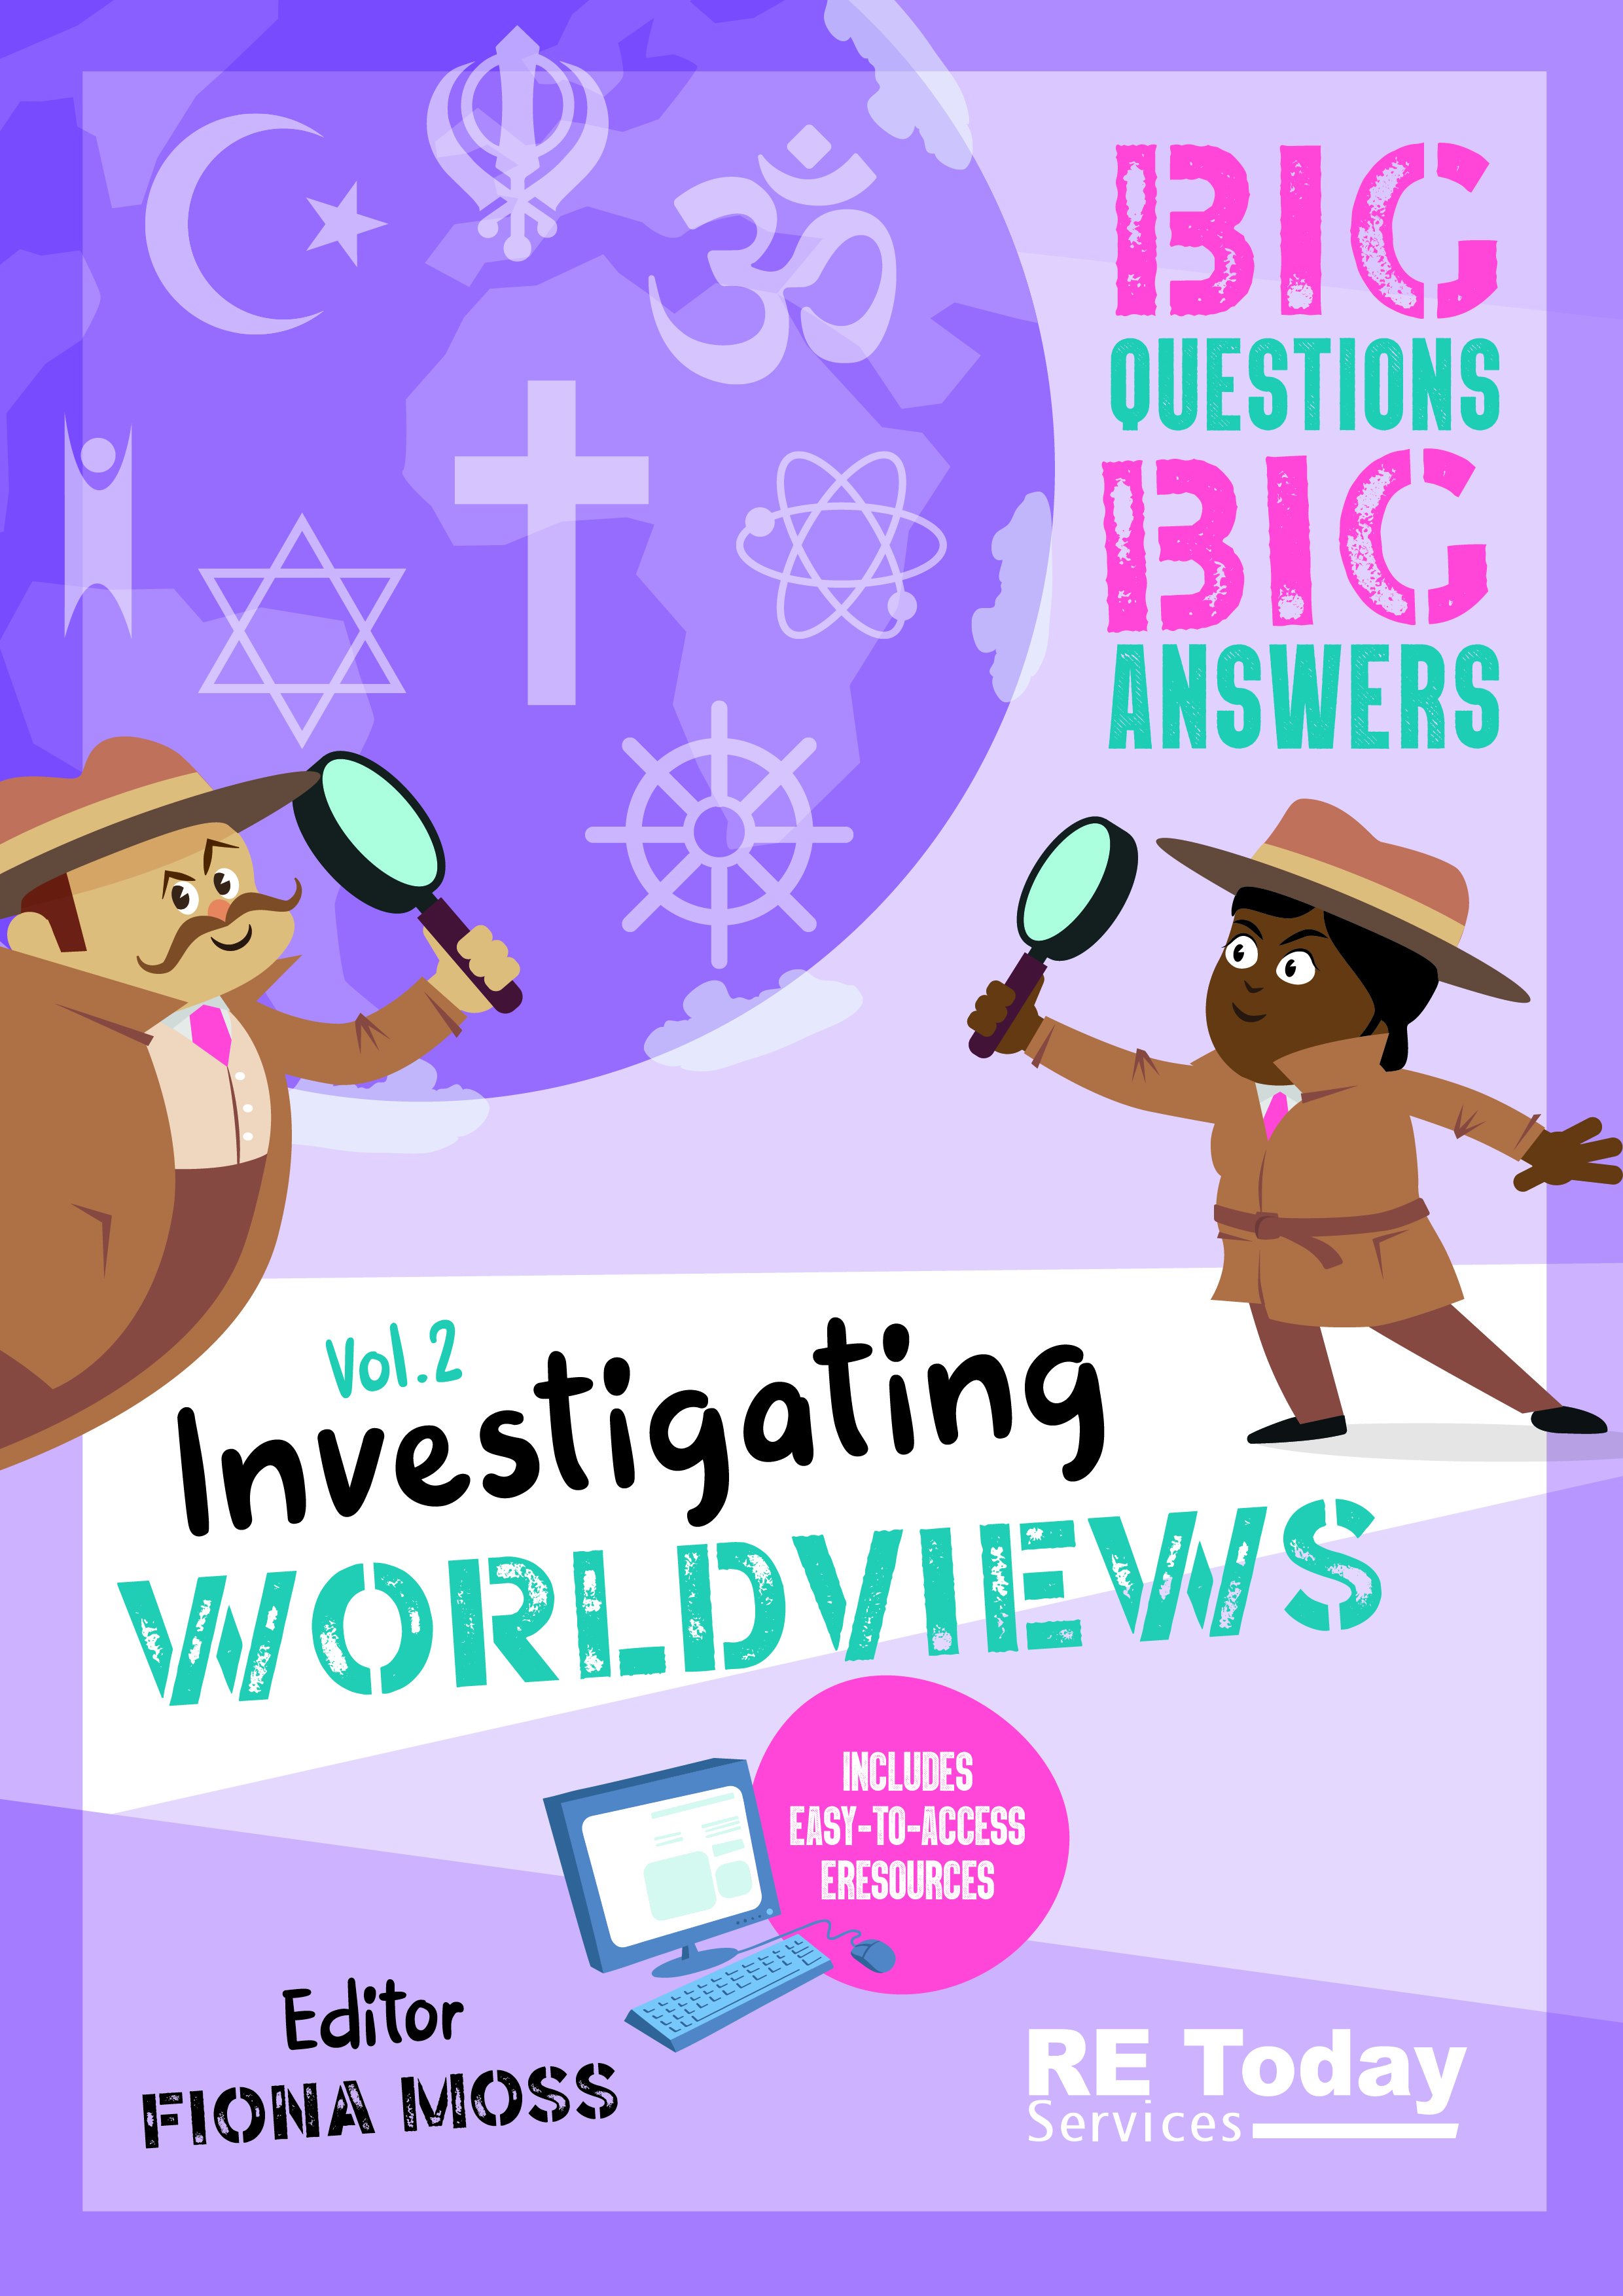 More information on BIG QUESTIONS BIG ANSWERS: Vol 2: World Views